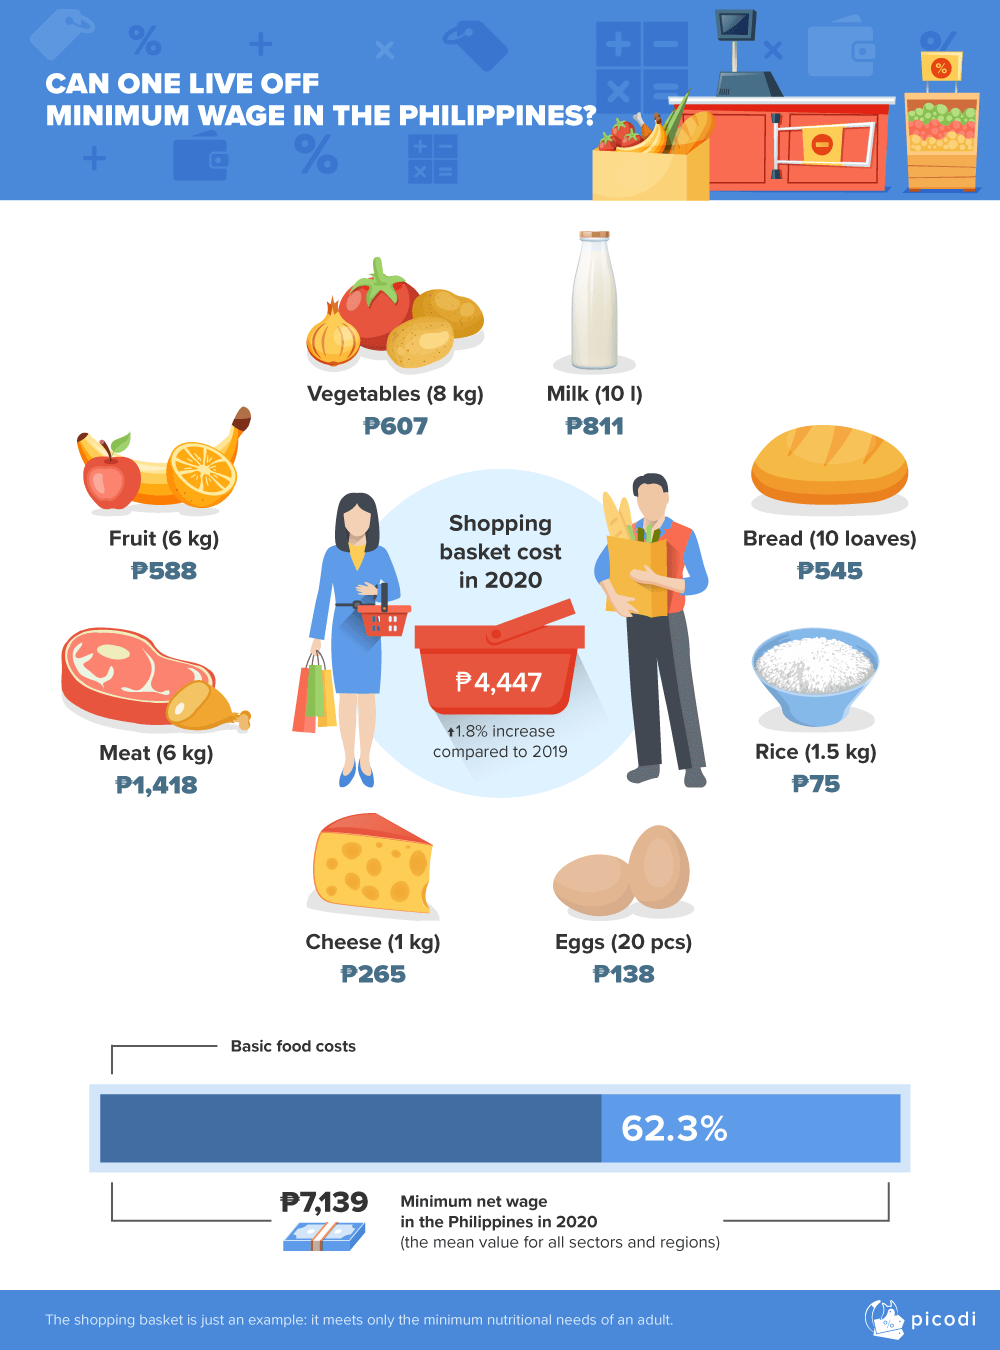 What are the prices of basic food products?